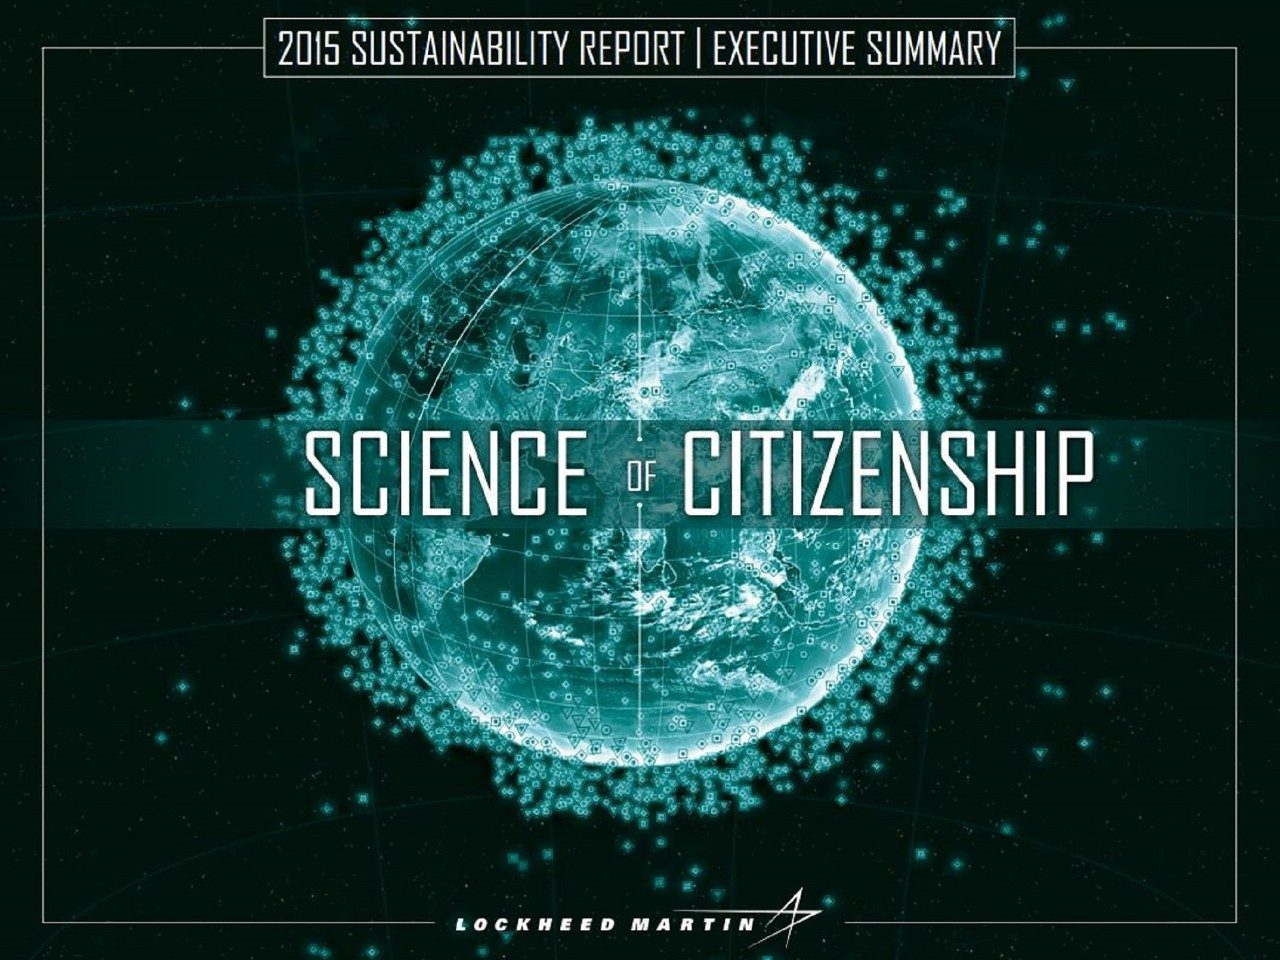 2015 Sustainability Executive Summary